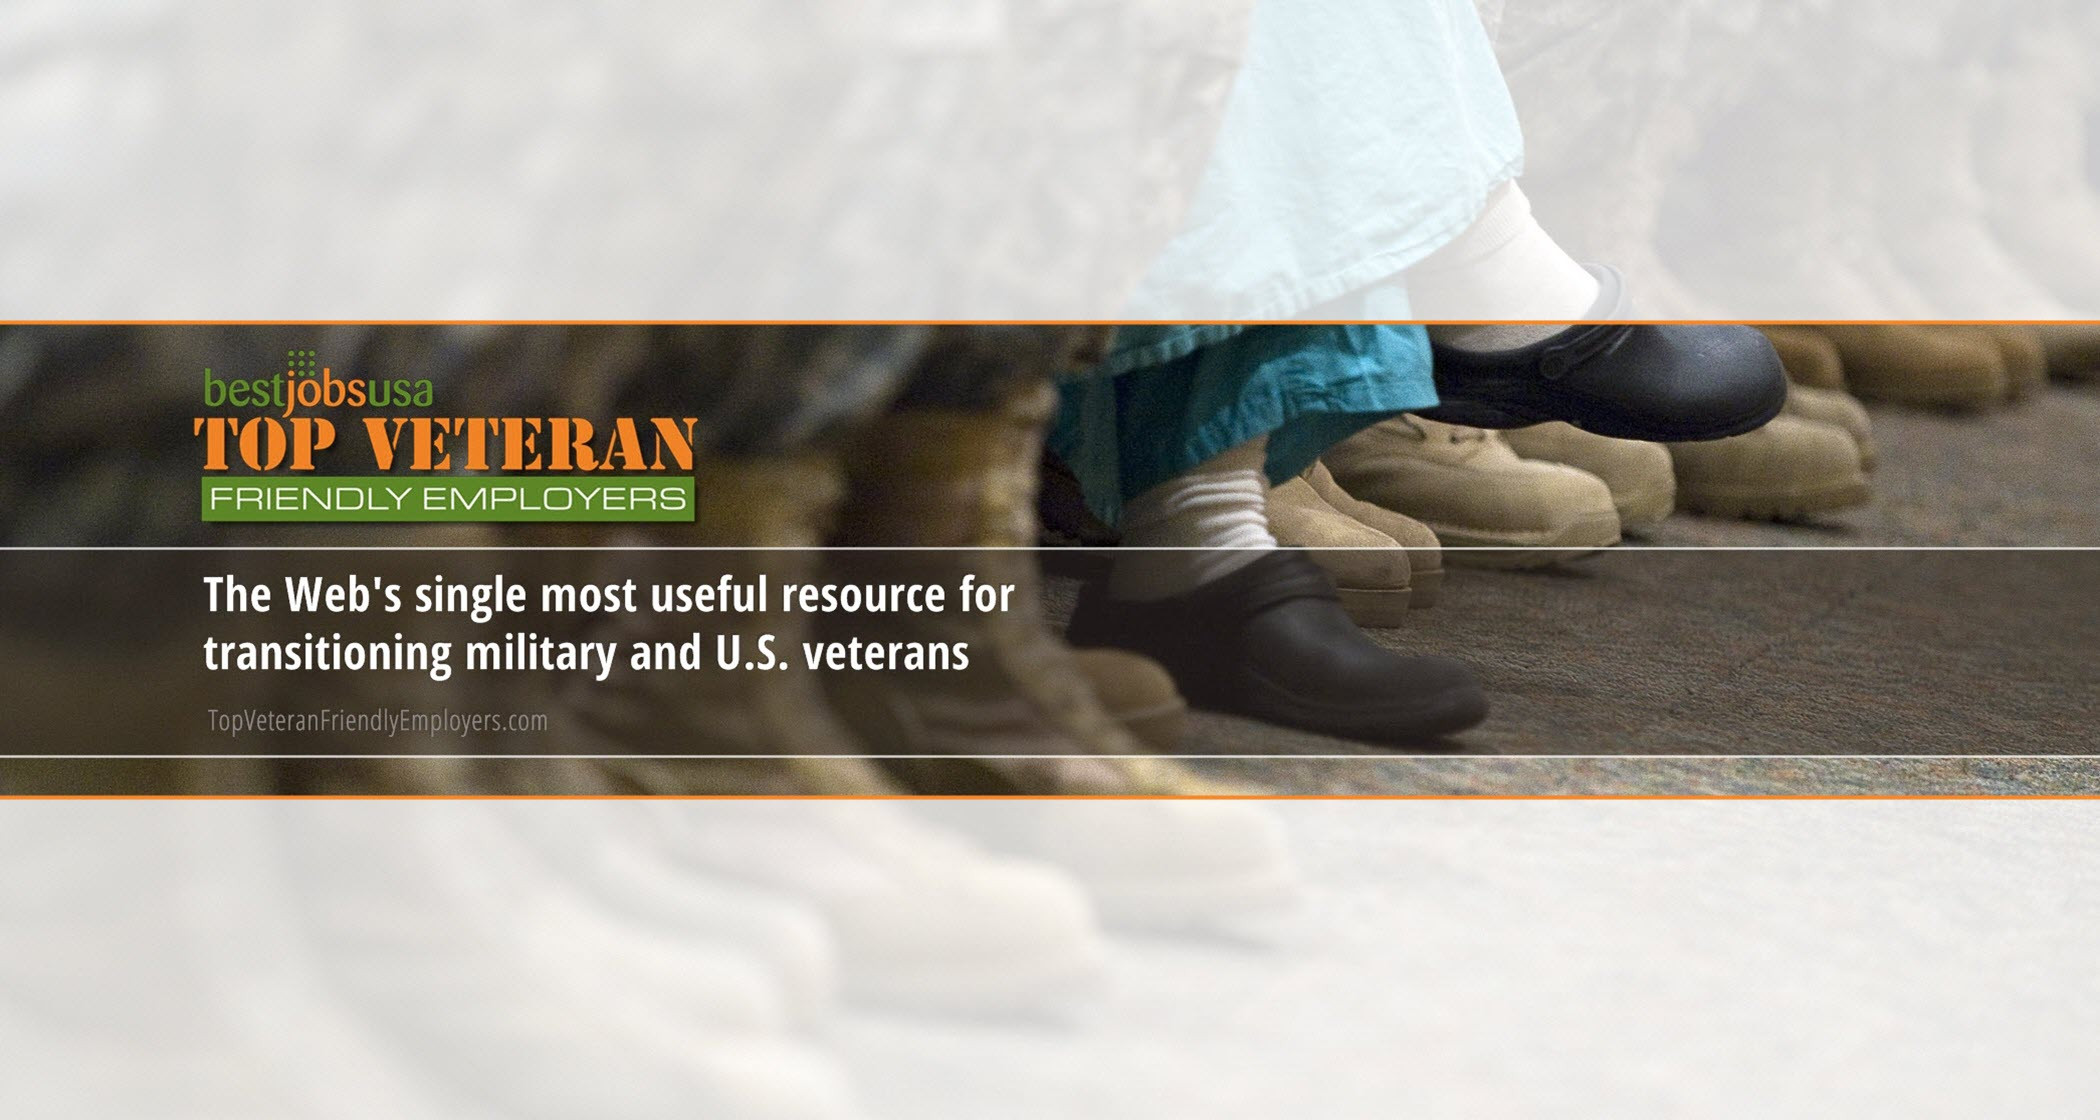 TopVeteranFriendlyEmployers.com | Companies with jobs for veterans hiring now